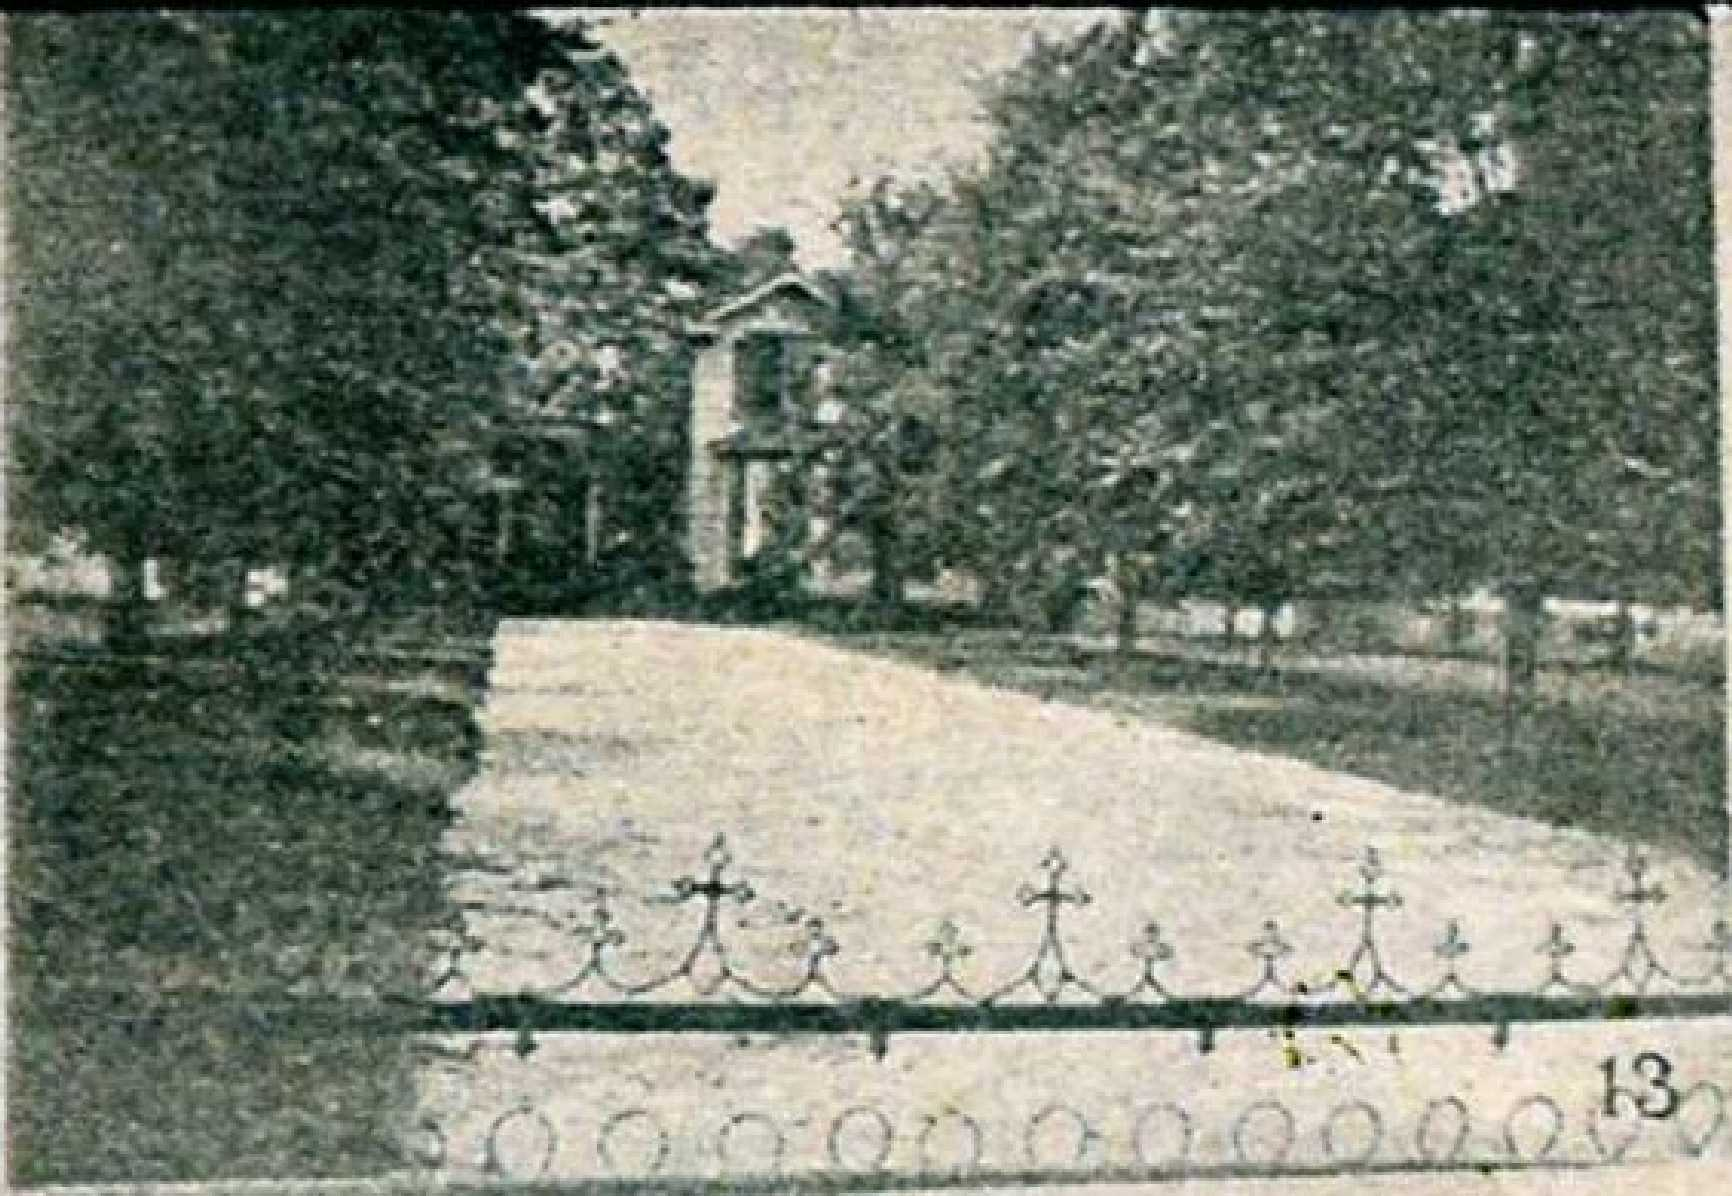 """Current location of Saint John's Methodist Church - The Witherspoon Home originally faced East White Street.The Herald reported on July 3, 1897 - """" The Rock Hill Hardware Company has orders for steel picket fencing, 350 ft. of ornamental fencing for the lawn in front of Mrs. J.C. Witherspoon's home..."""""""